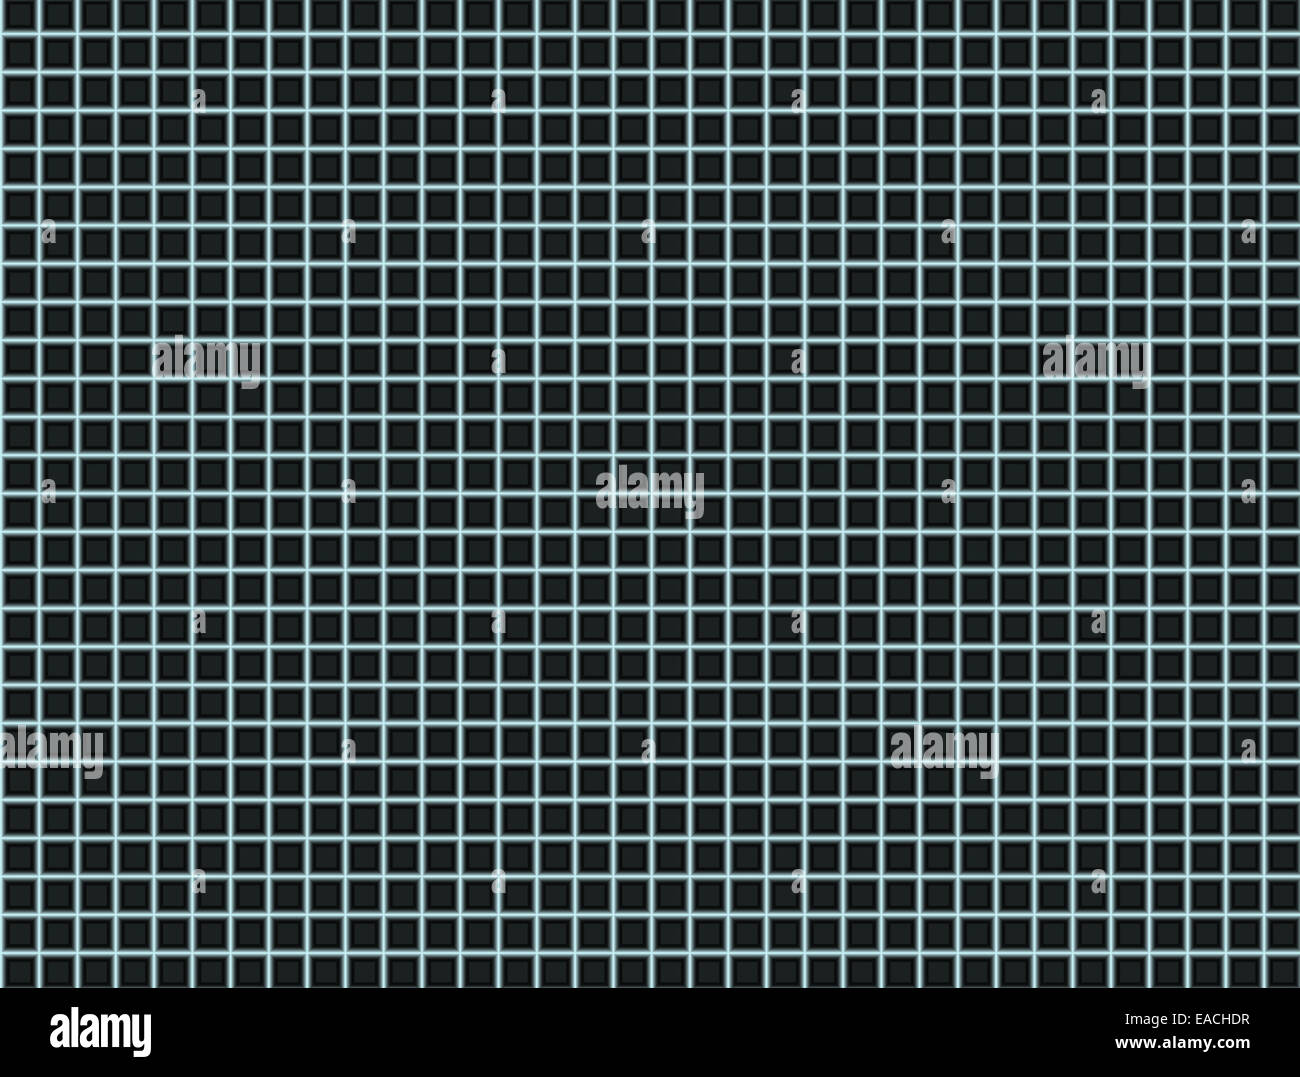 Precision Square Stock Photos Images Alamy Squarer Abstract Black Background Technical Matrix Image